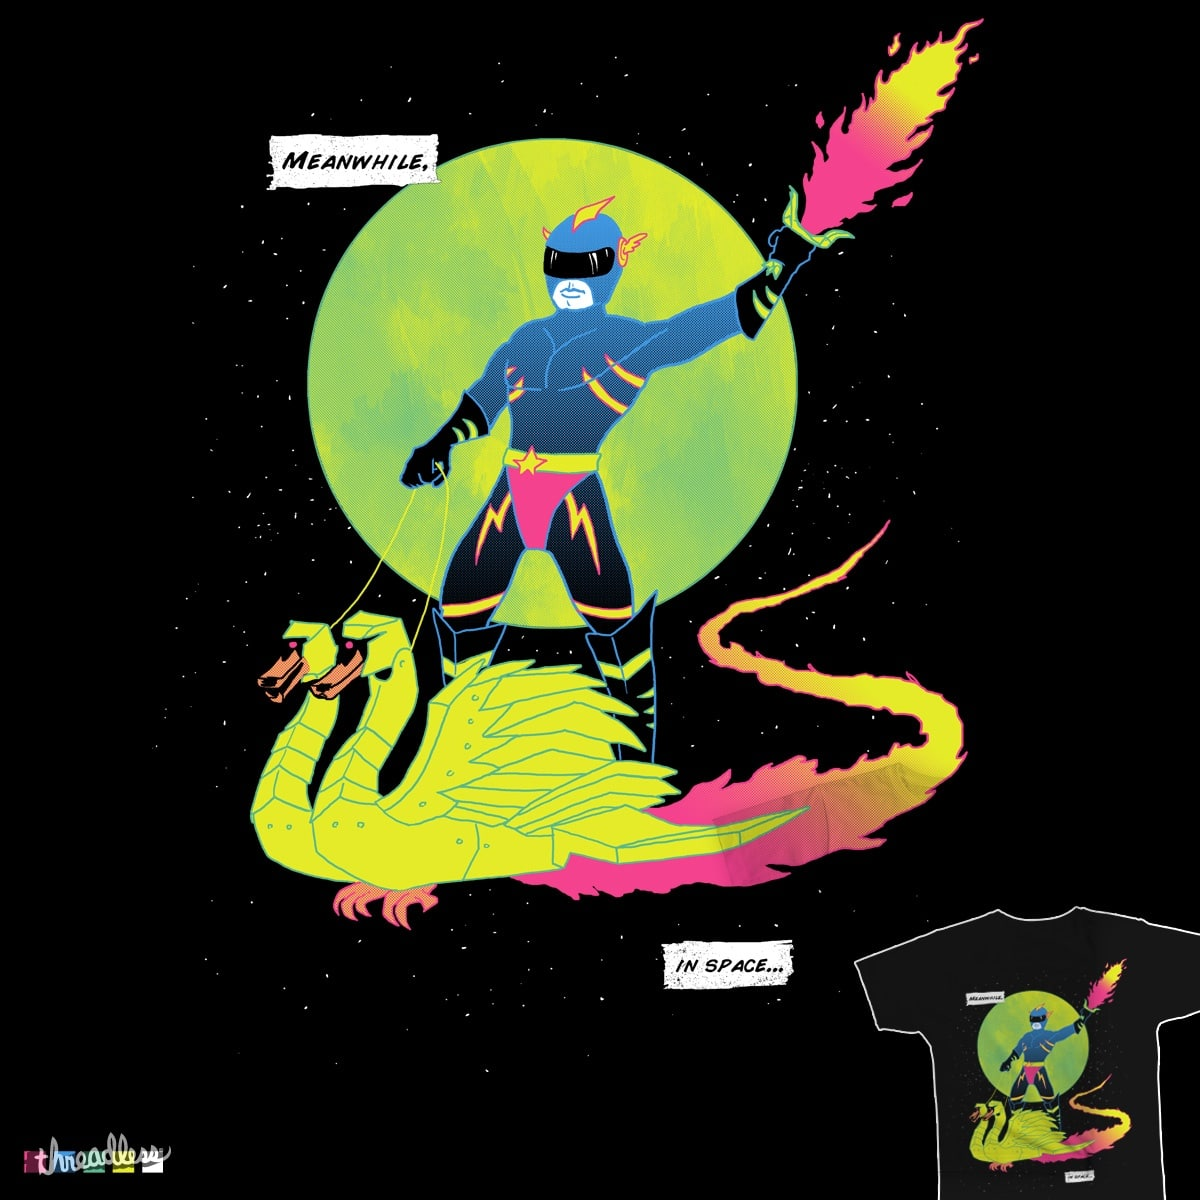 Meanwhile, In Space by wytrab8 on Threadless